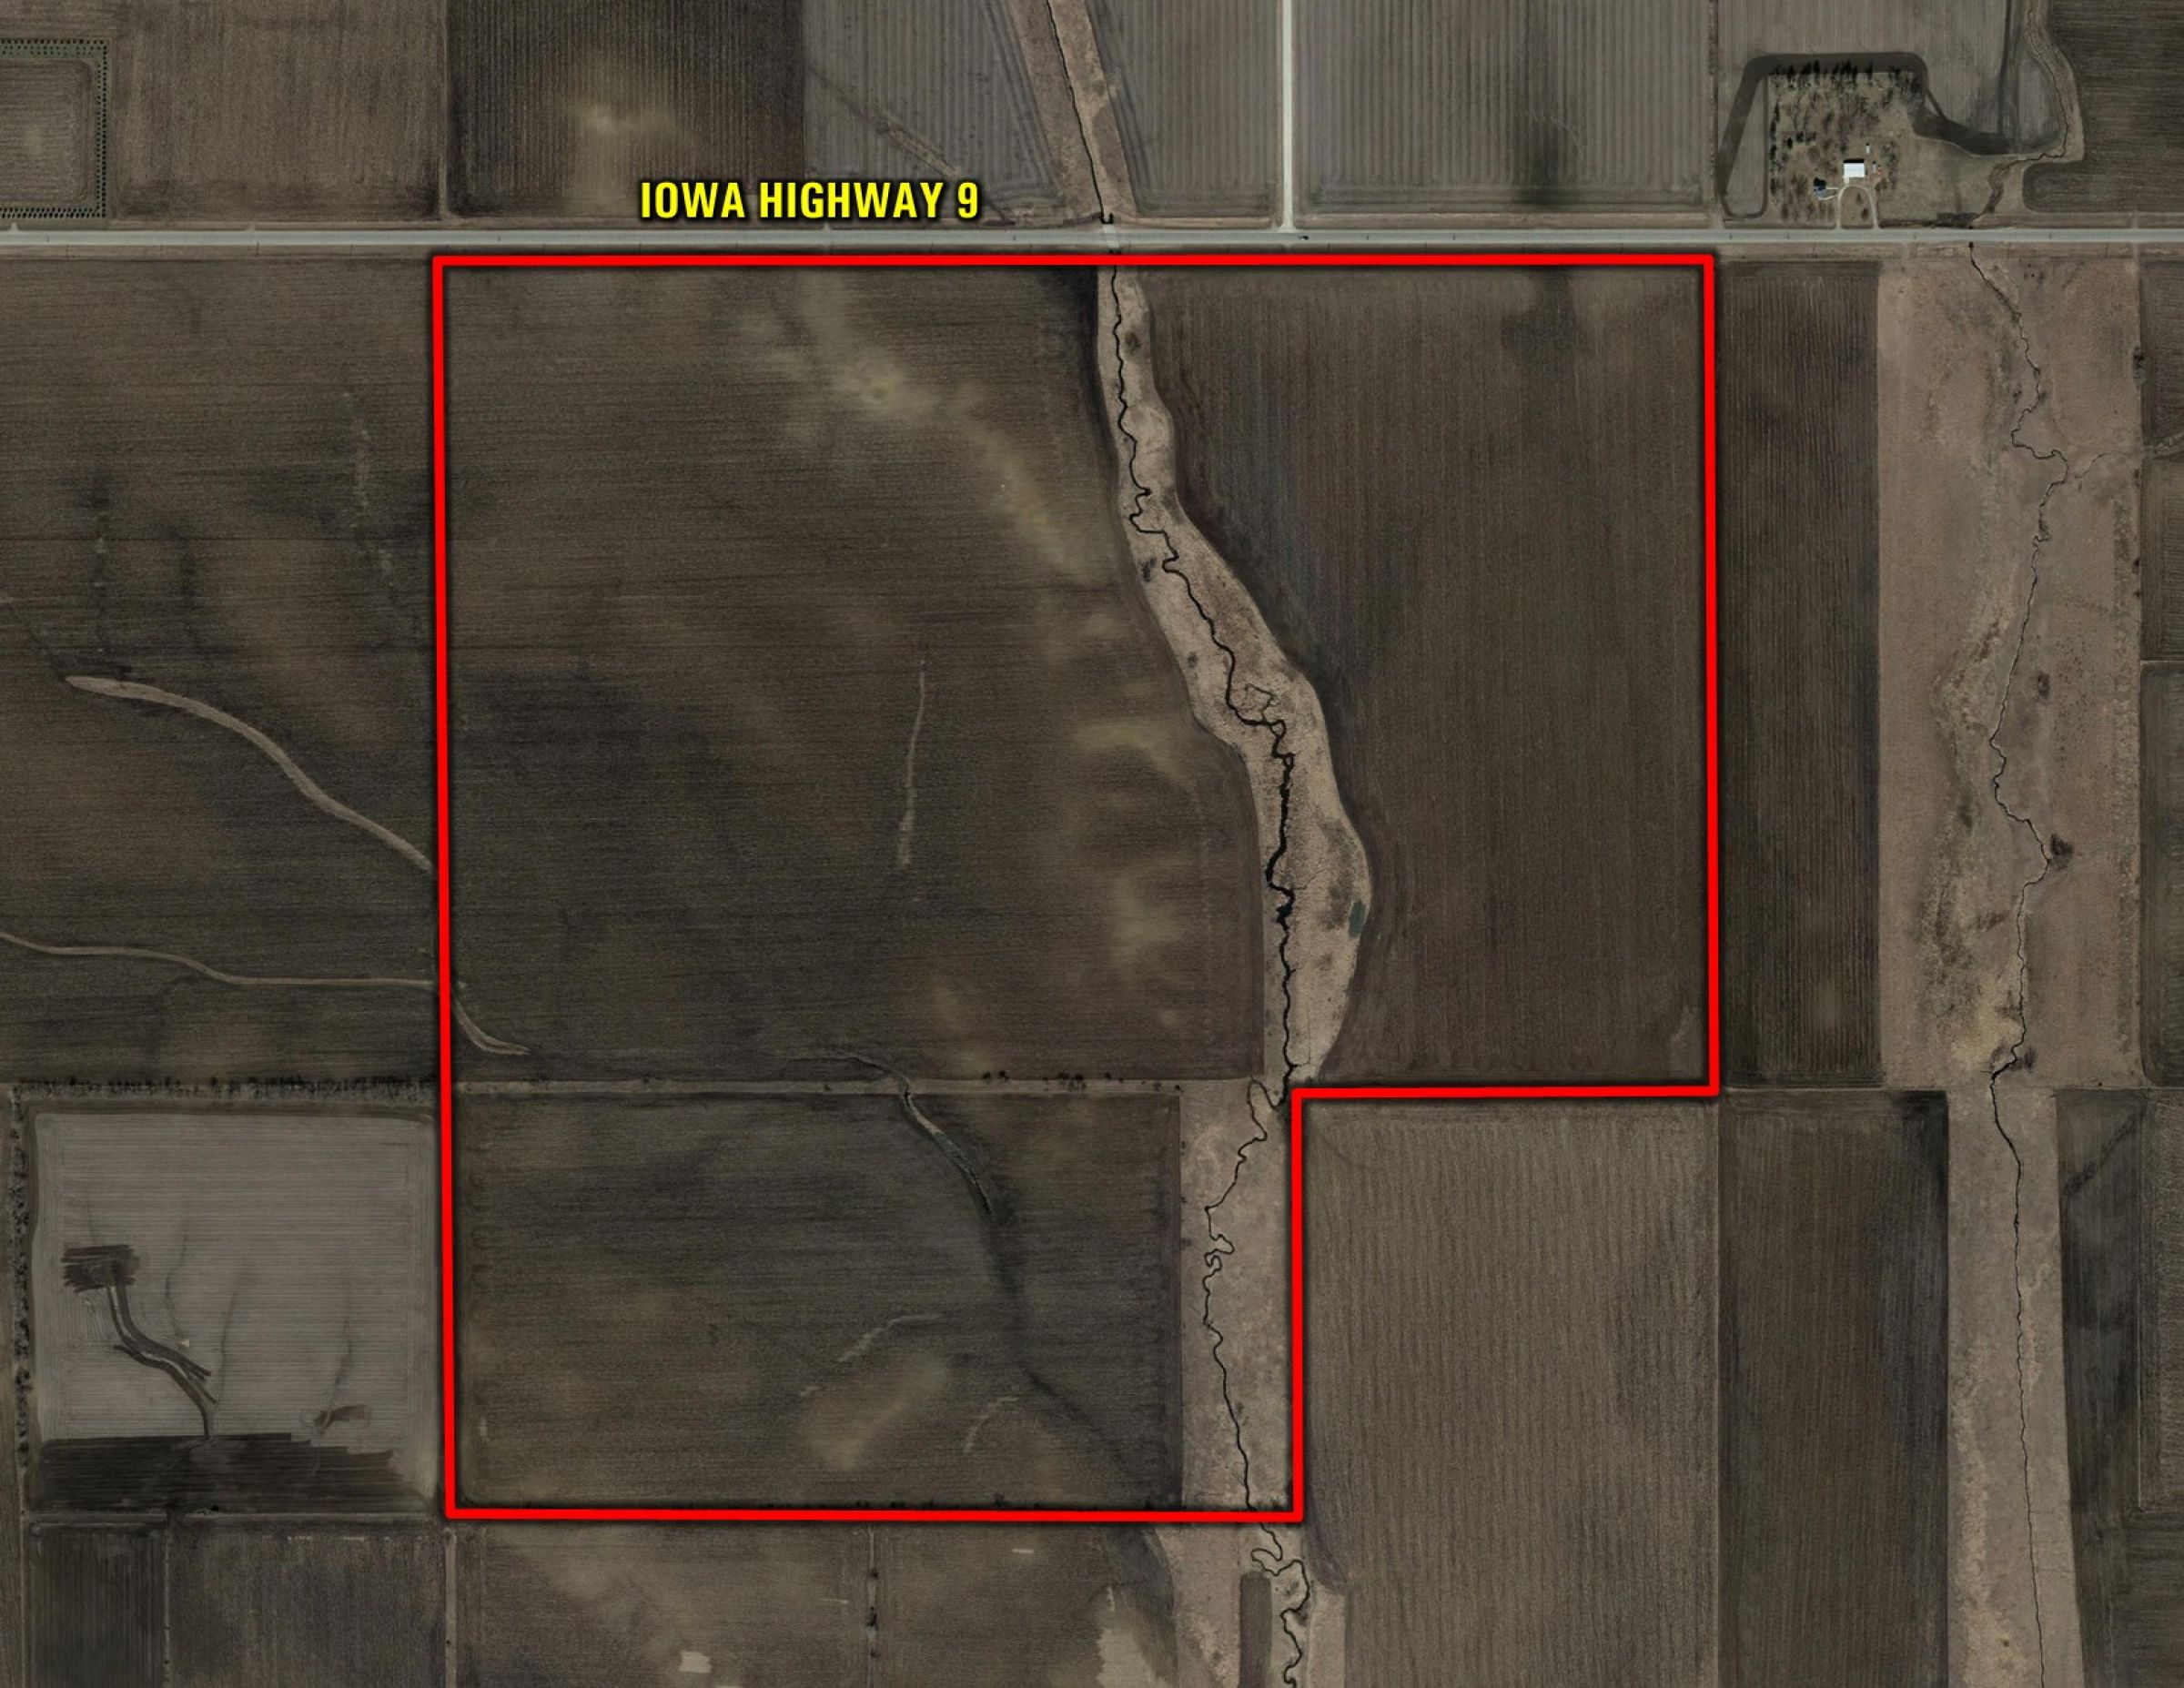 land-worth-county-iowa-0-acres-listing-number-15180-0-2020-09-21-202613.jpg